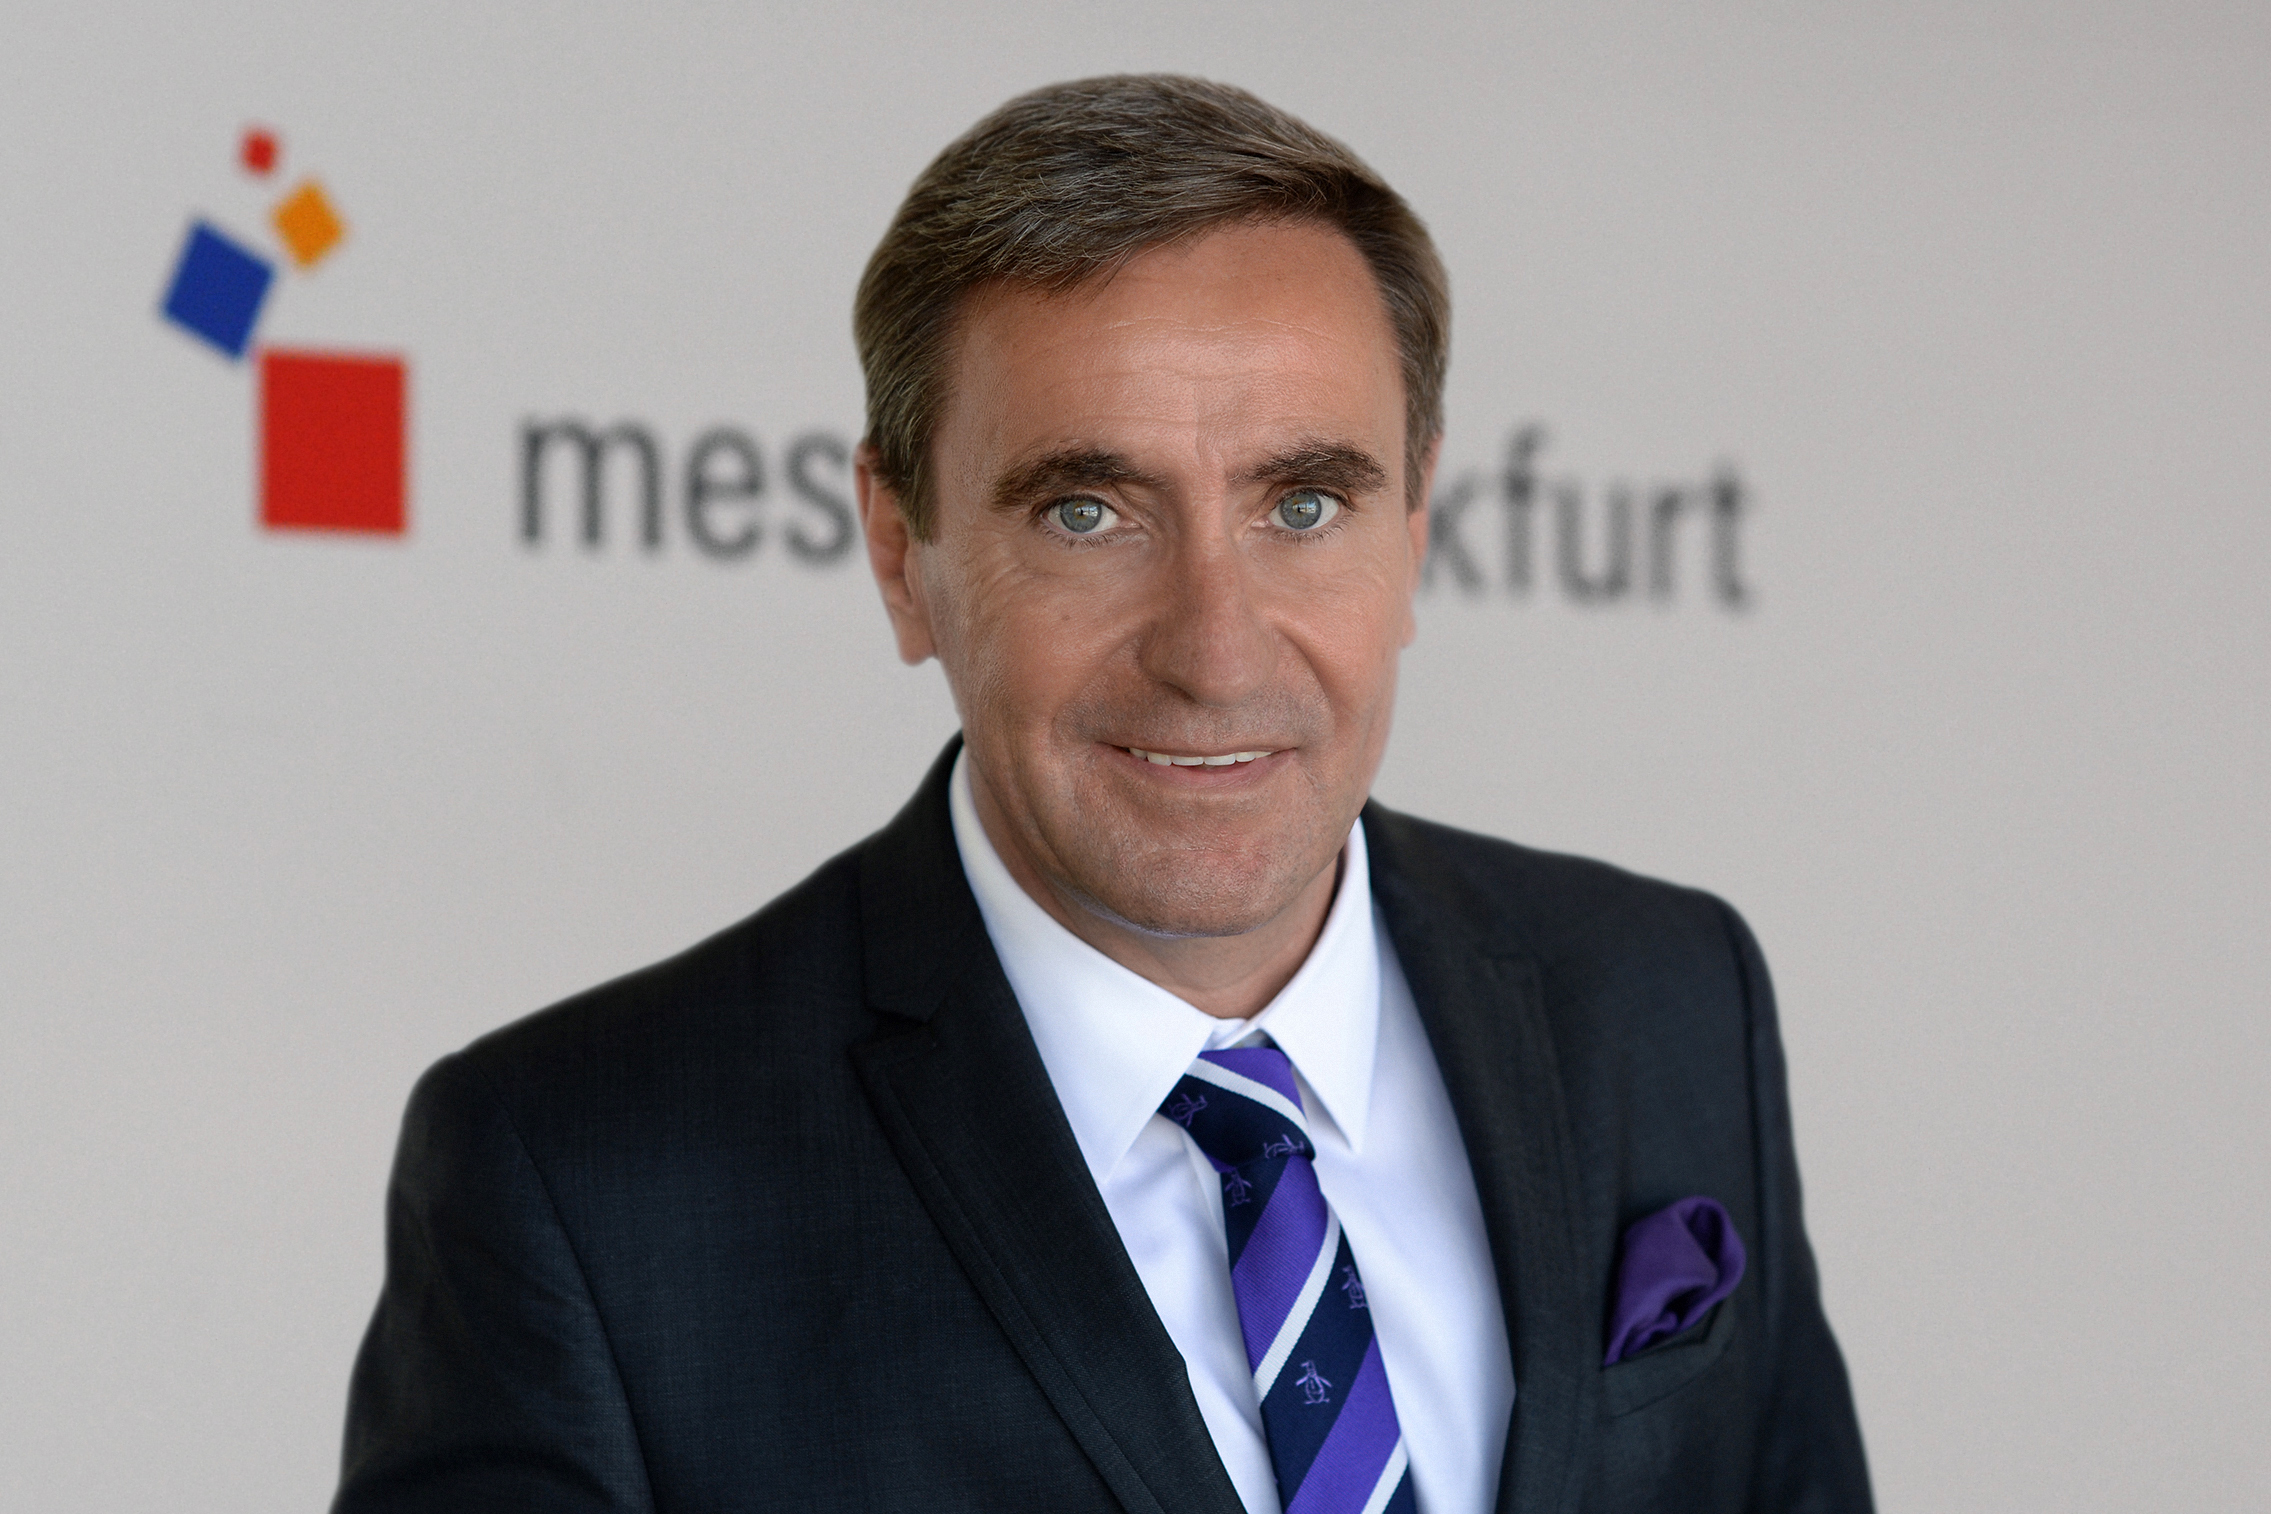 Stephan Kurzawski, Consumer Goods & Sales, Senior Vice President Messe Frankfurt Exhibition GmbH